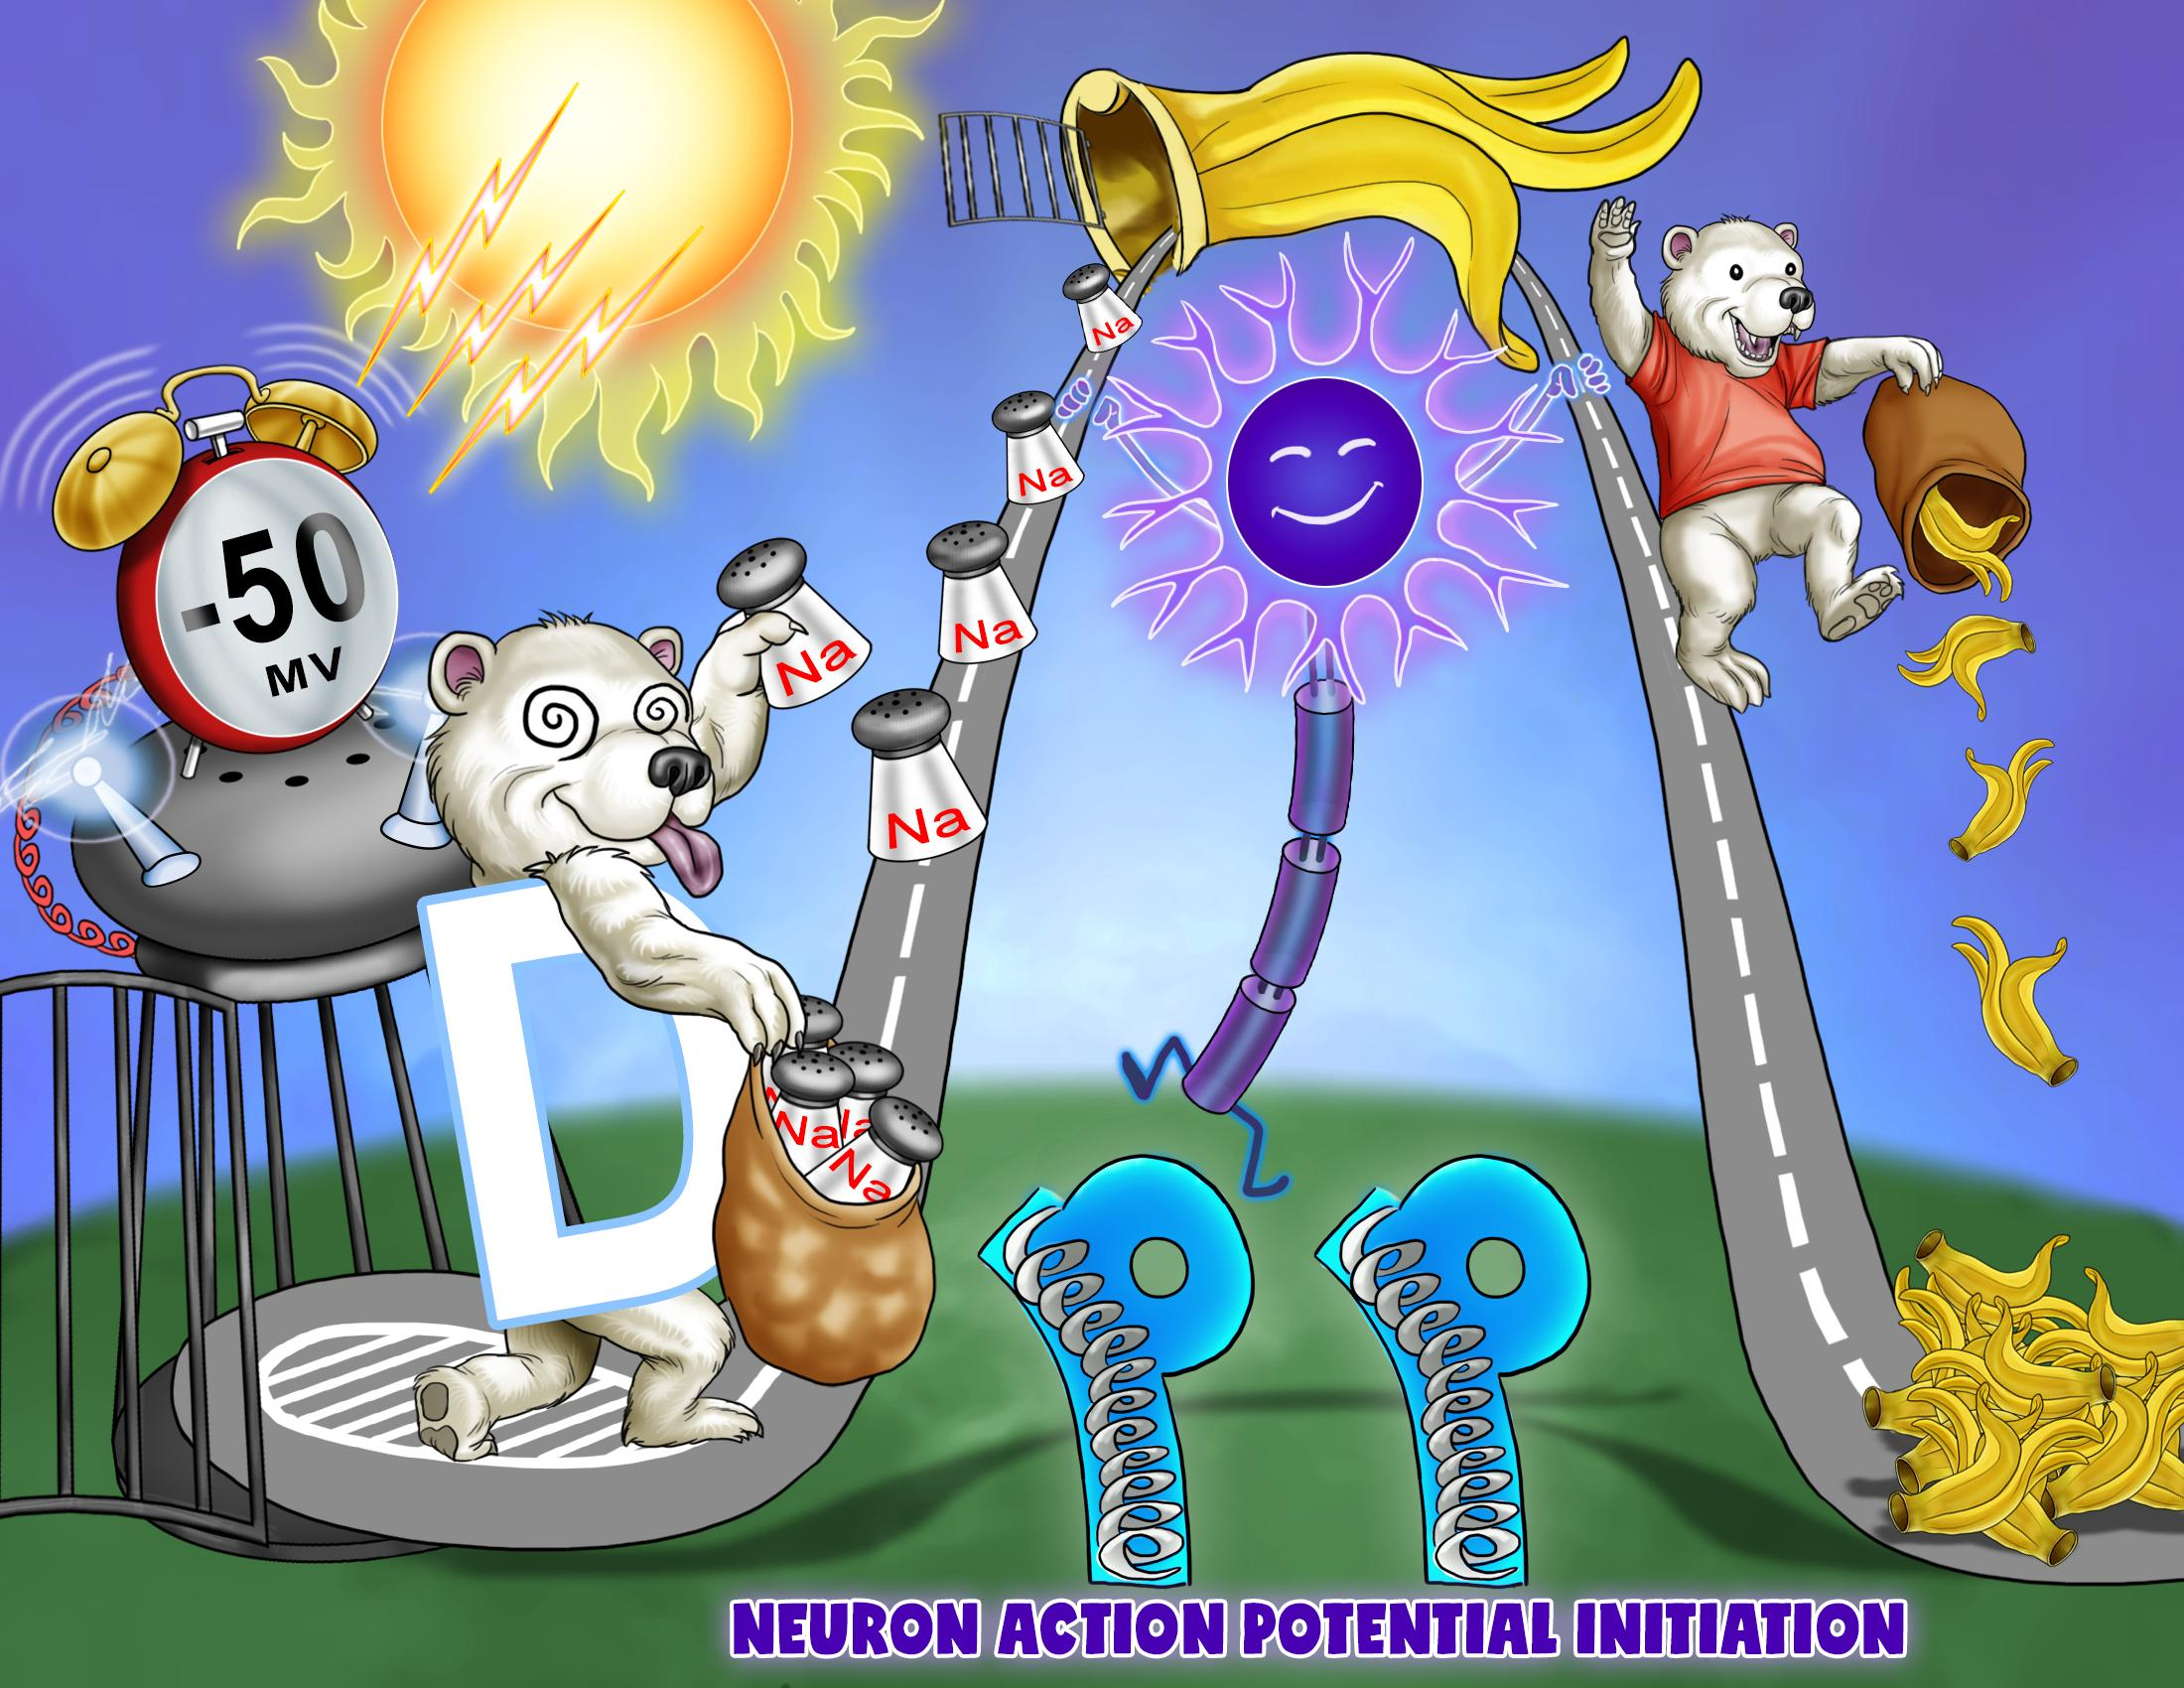 Neuron Action Potential Initiation